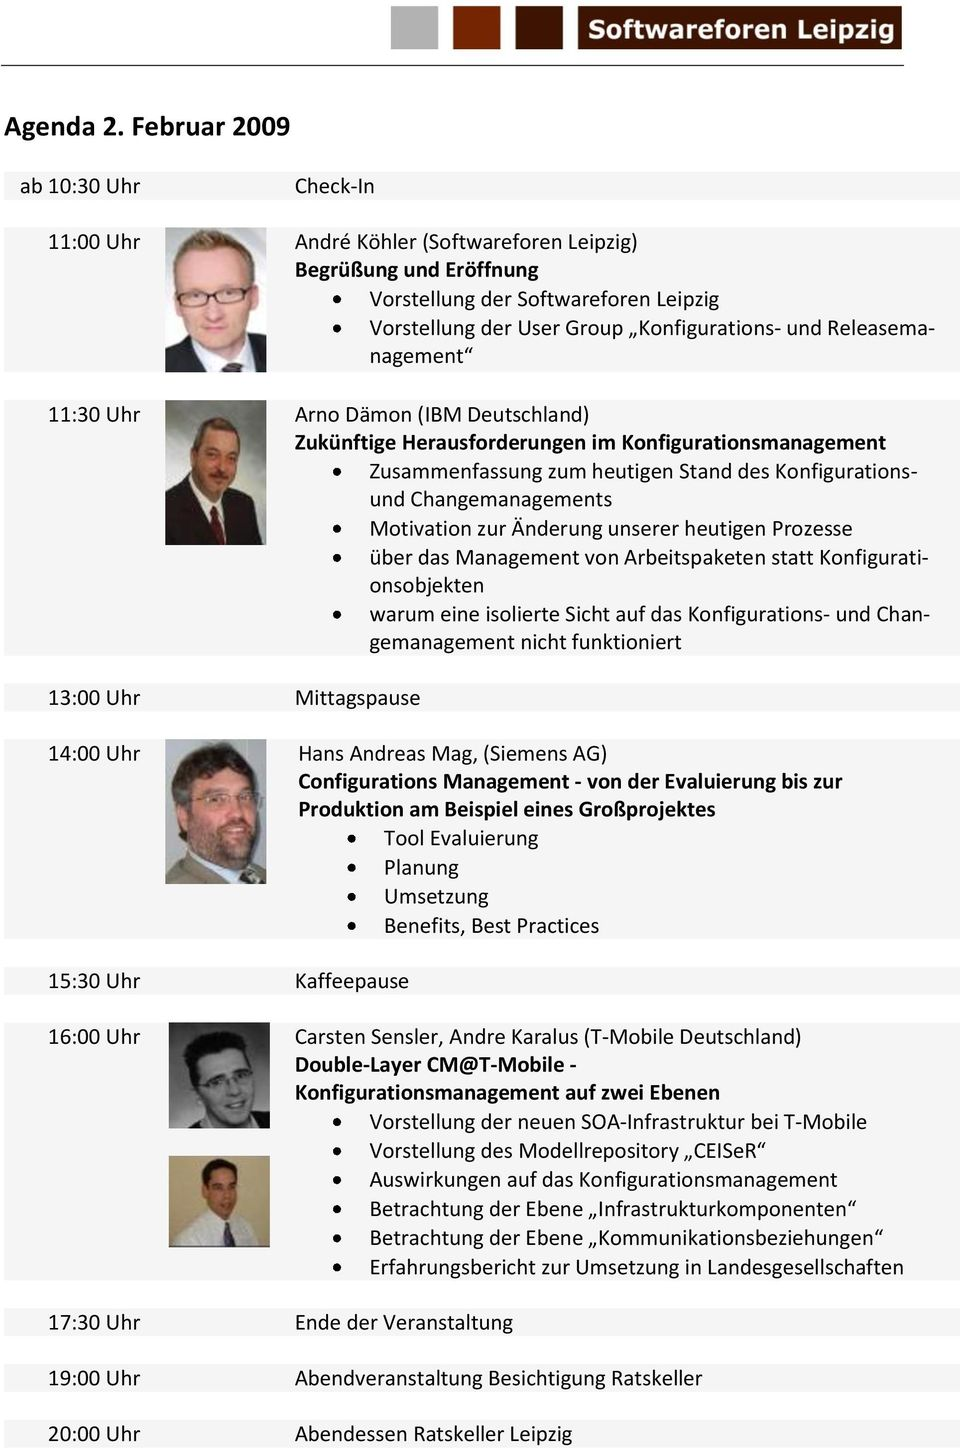 Releasemanagement 11:30 Uhr Arno Dämon (IBM Deutschland) Zukünftige Herausforderungen im Konfigurationsmanagement Zusammenfassung zum heutigen Stand des Konfigurationsund Changemanagements Motivation